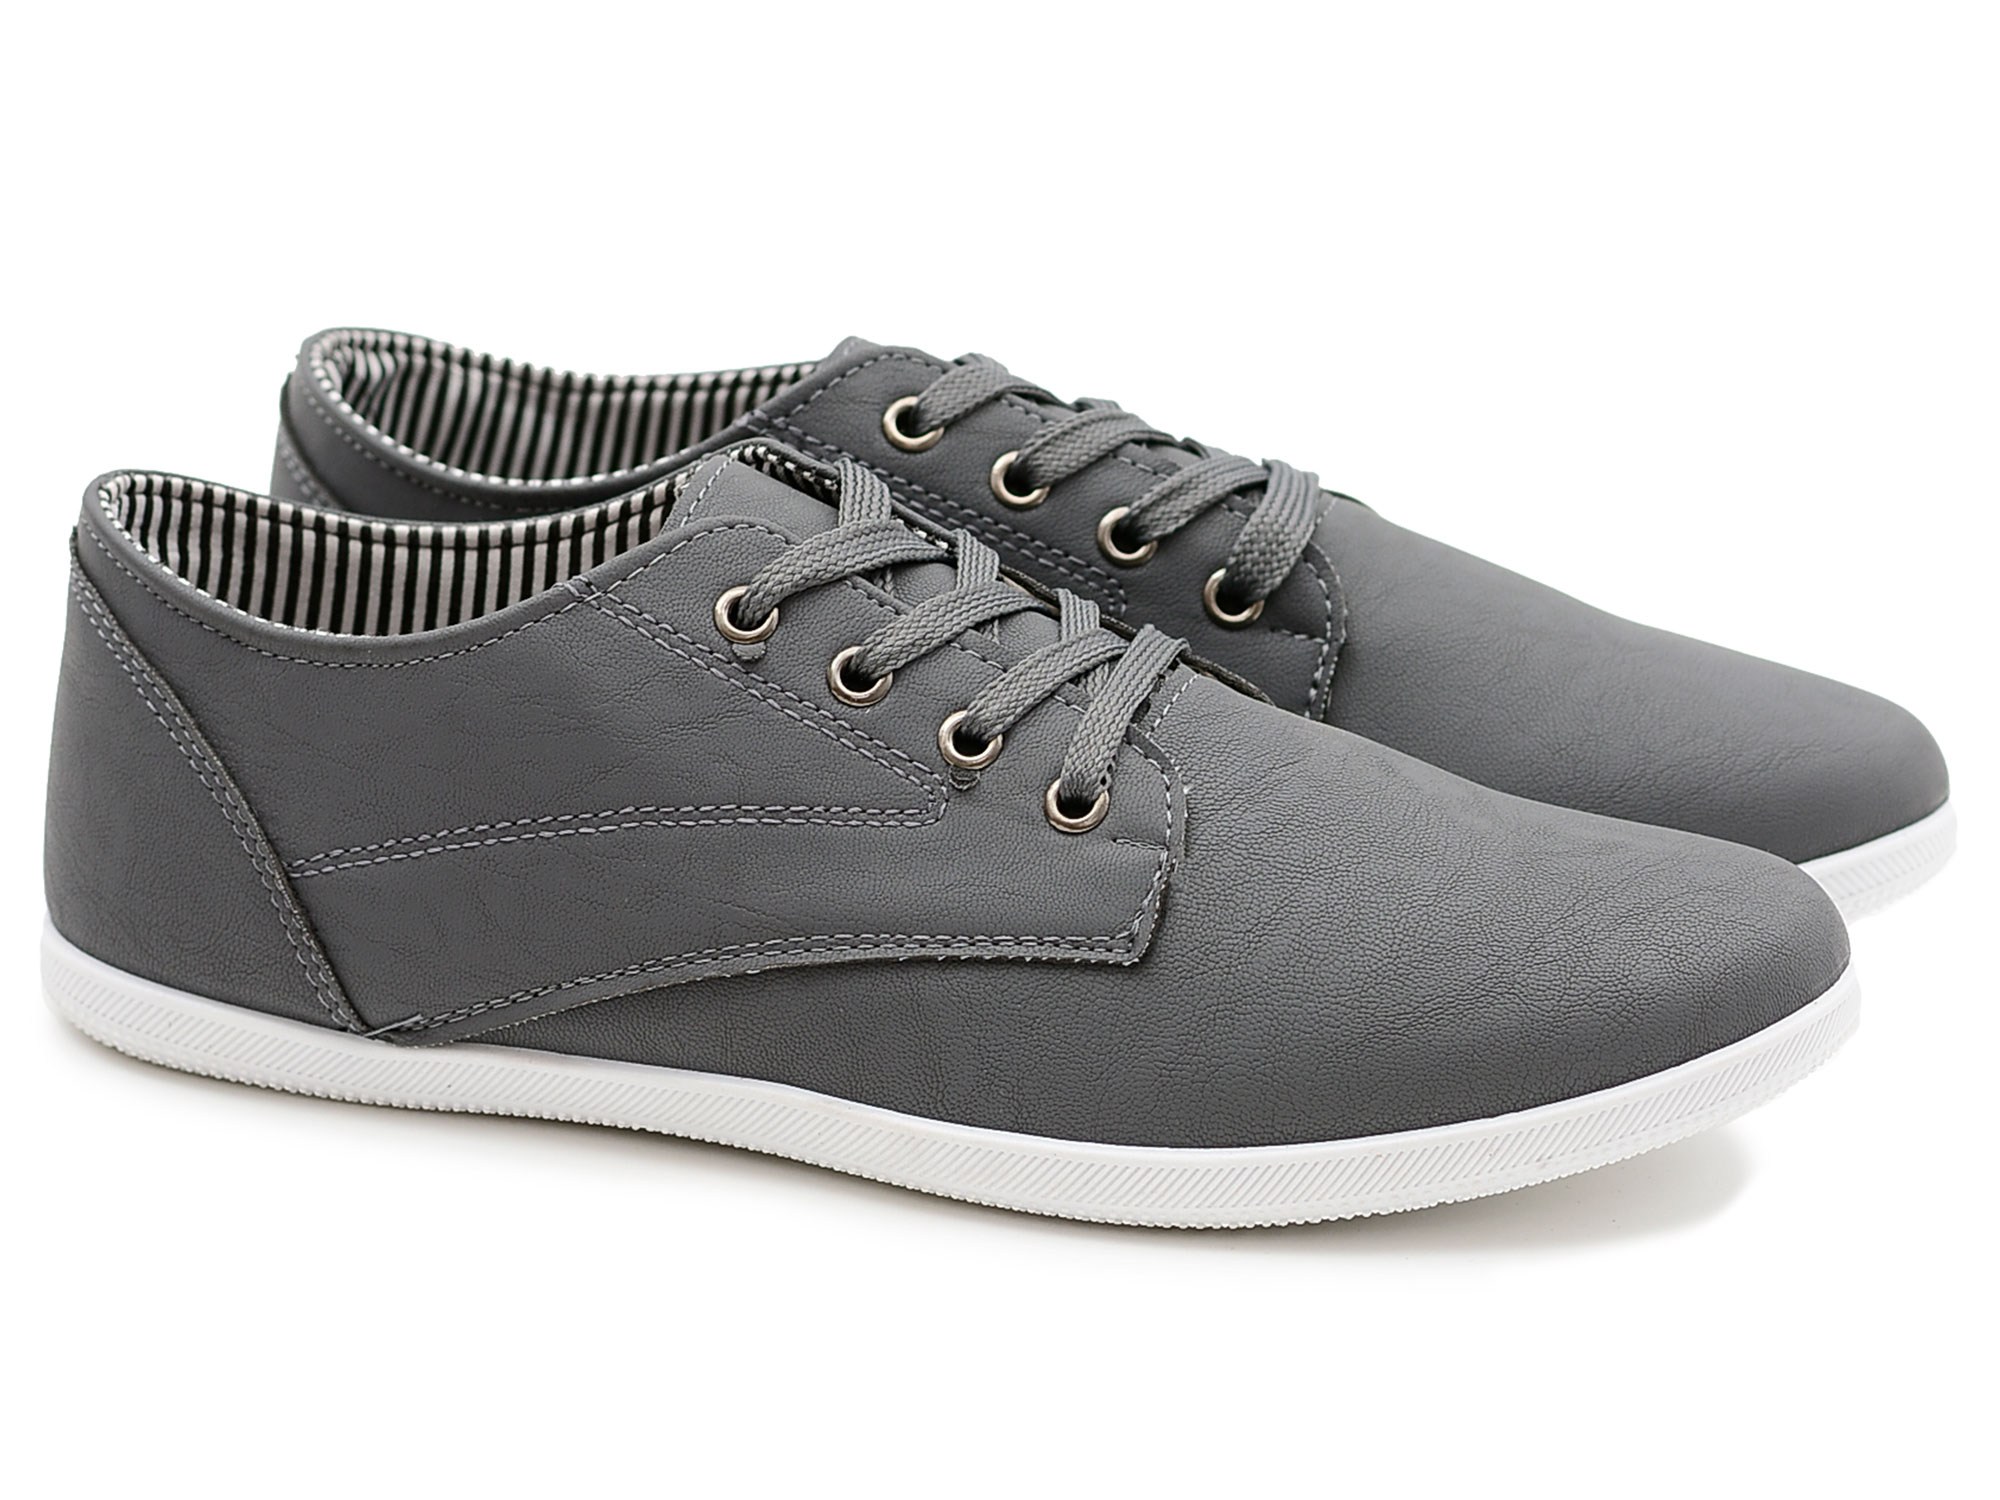 170f98d6645c ... ADIDAS CAFLAIRE B43742 BUTY MĘSKIE TENISÓWKI SZARE. SPORTOWE MĘSKIE  TENISÓWKI SZARE TRAMPKI CASUAL 45